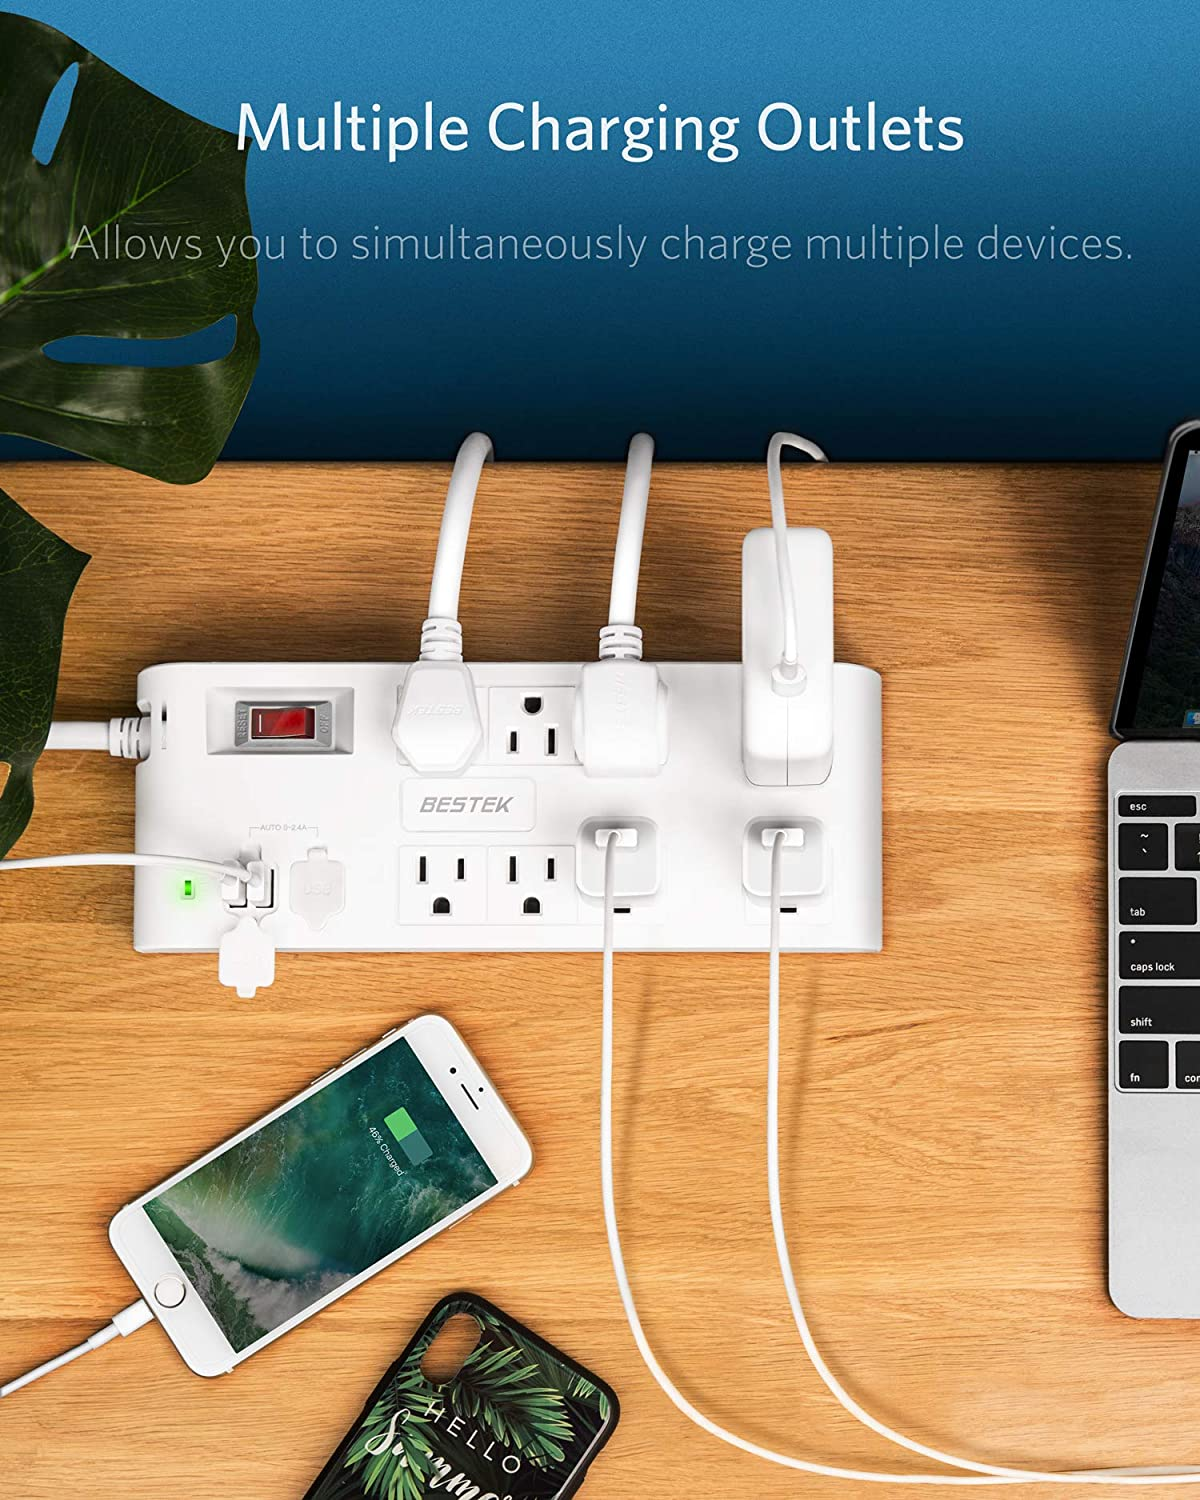 BESTEK 8-Outlet 6 Feet Extension Cord Power Strip with USB 15A 1875W Surge Protector with 5V 4.2A 4 USB Charging Port Desktop Charging Station,600Joule,Ultra-Compact Wide Spaced Outlet for Large Plug